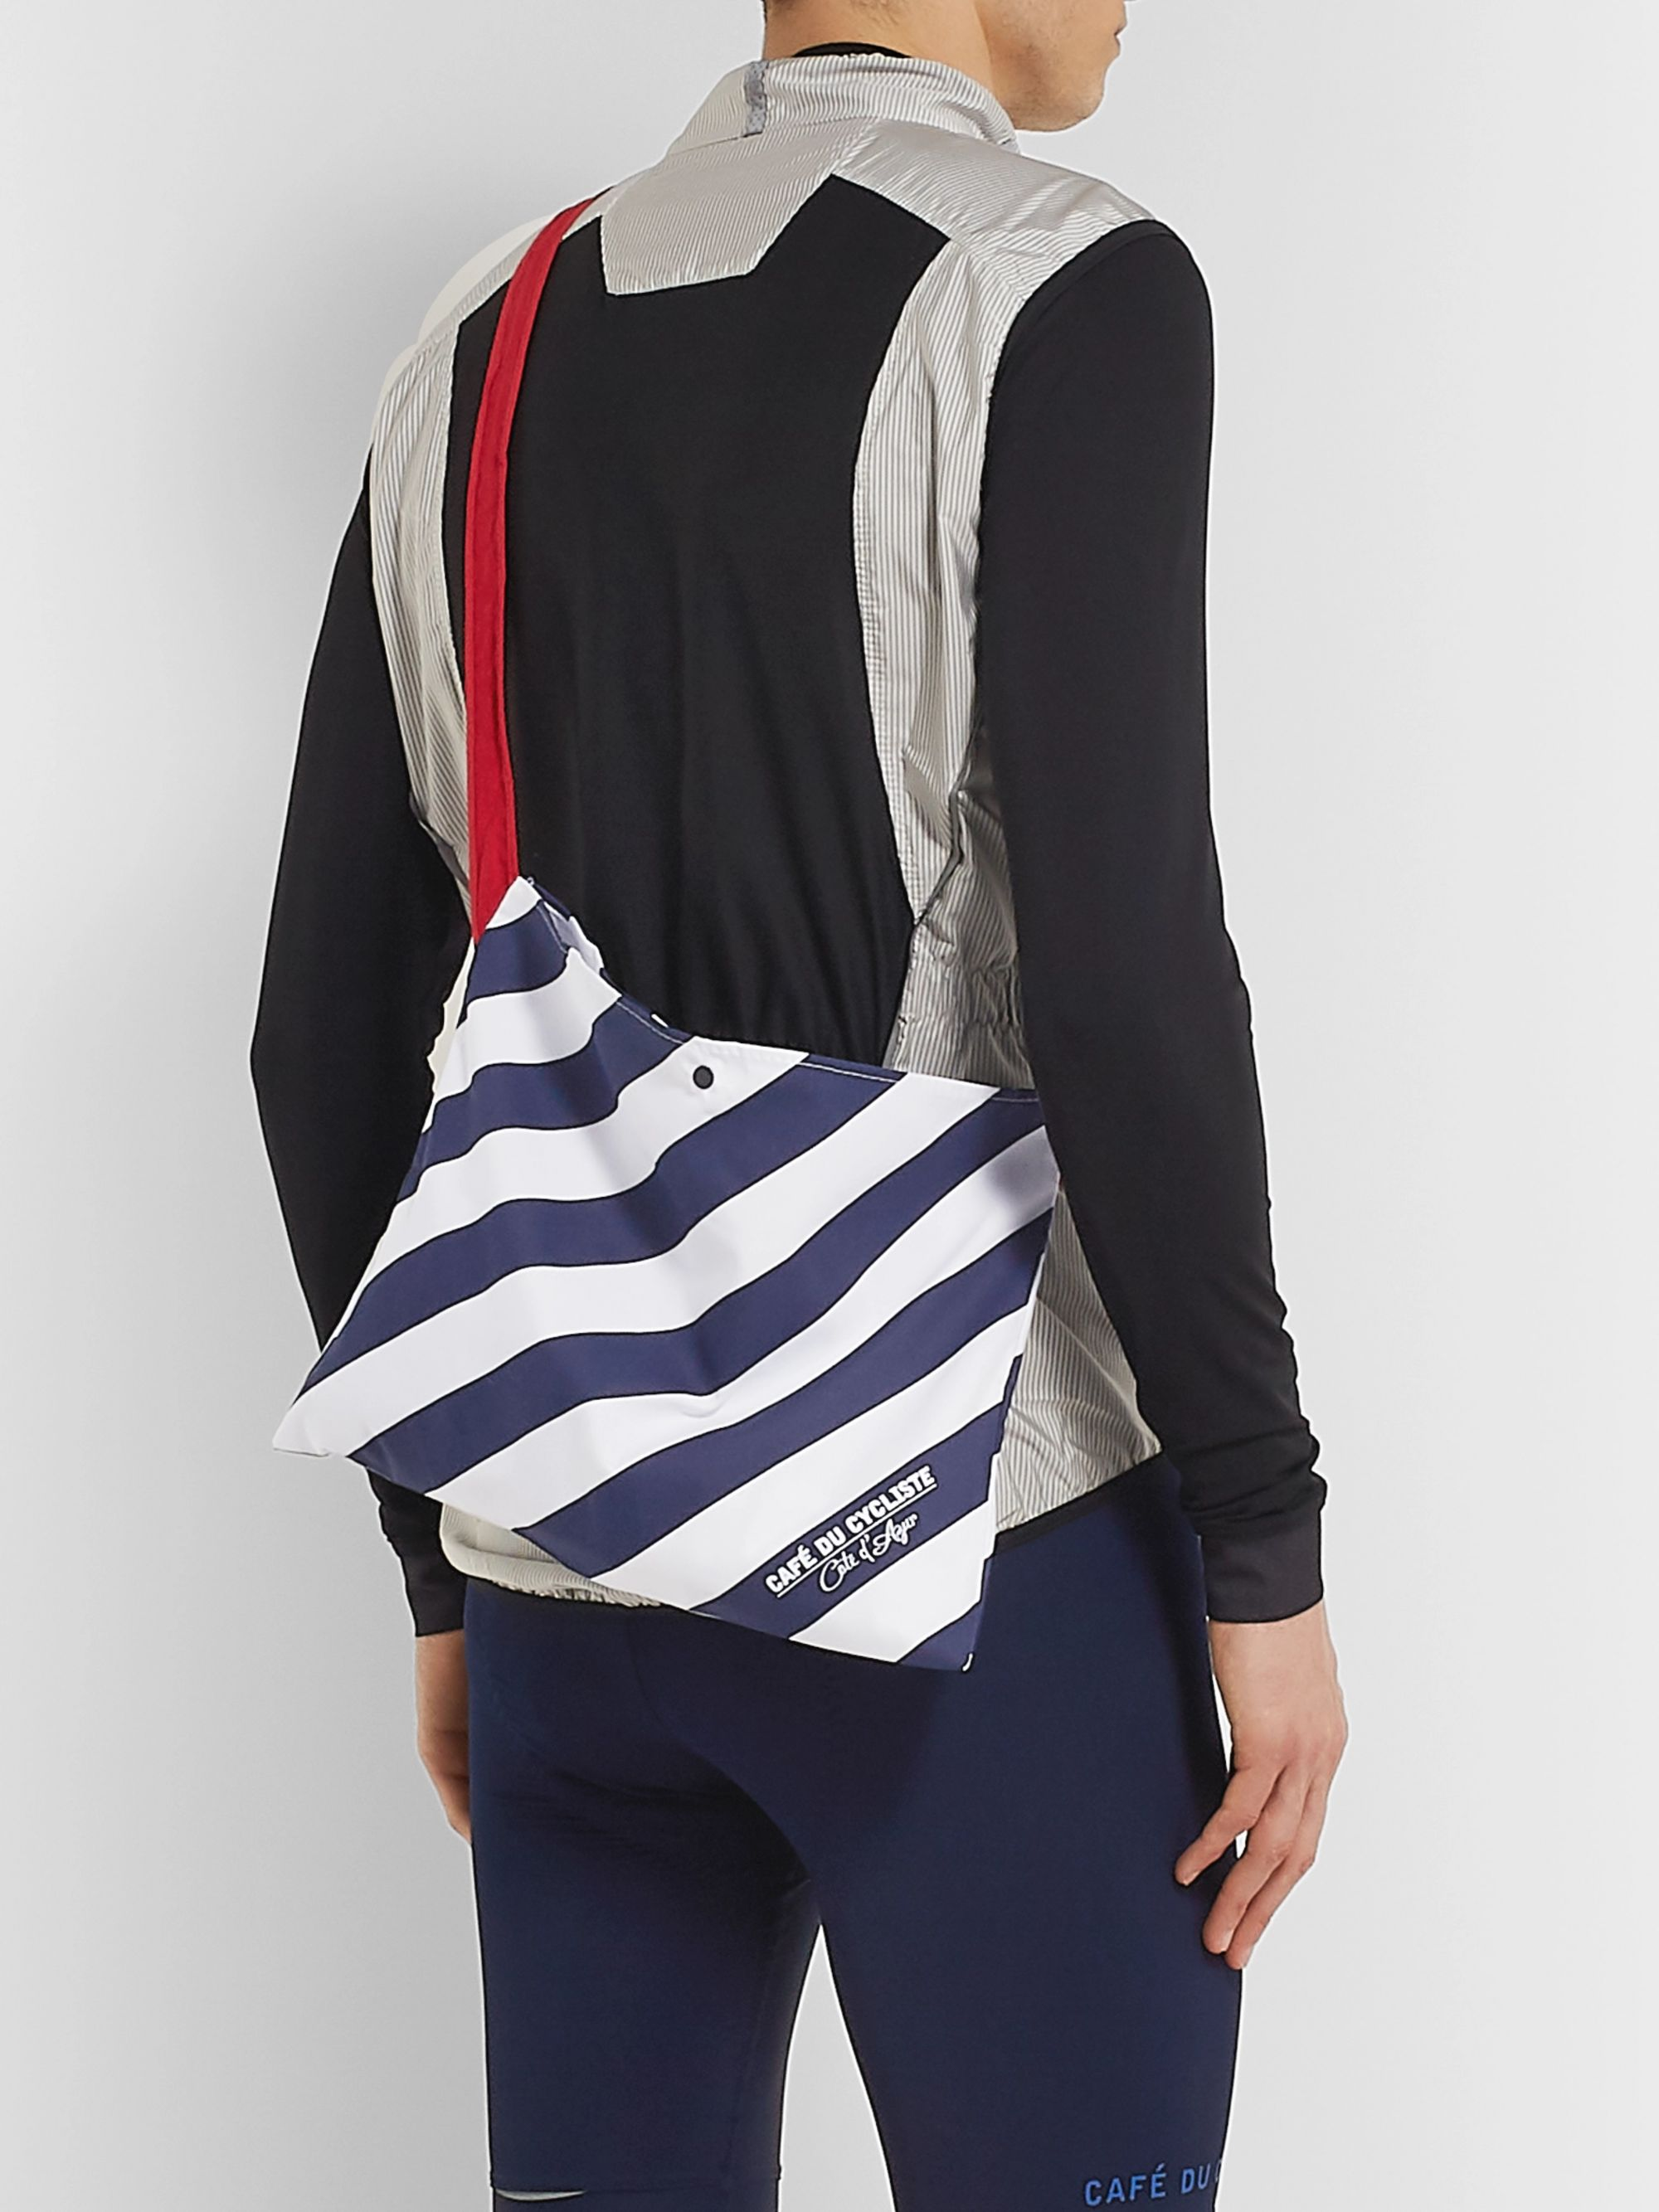 Cafe du Cycliste Striped Woven Musette Bag